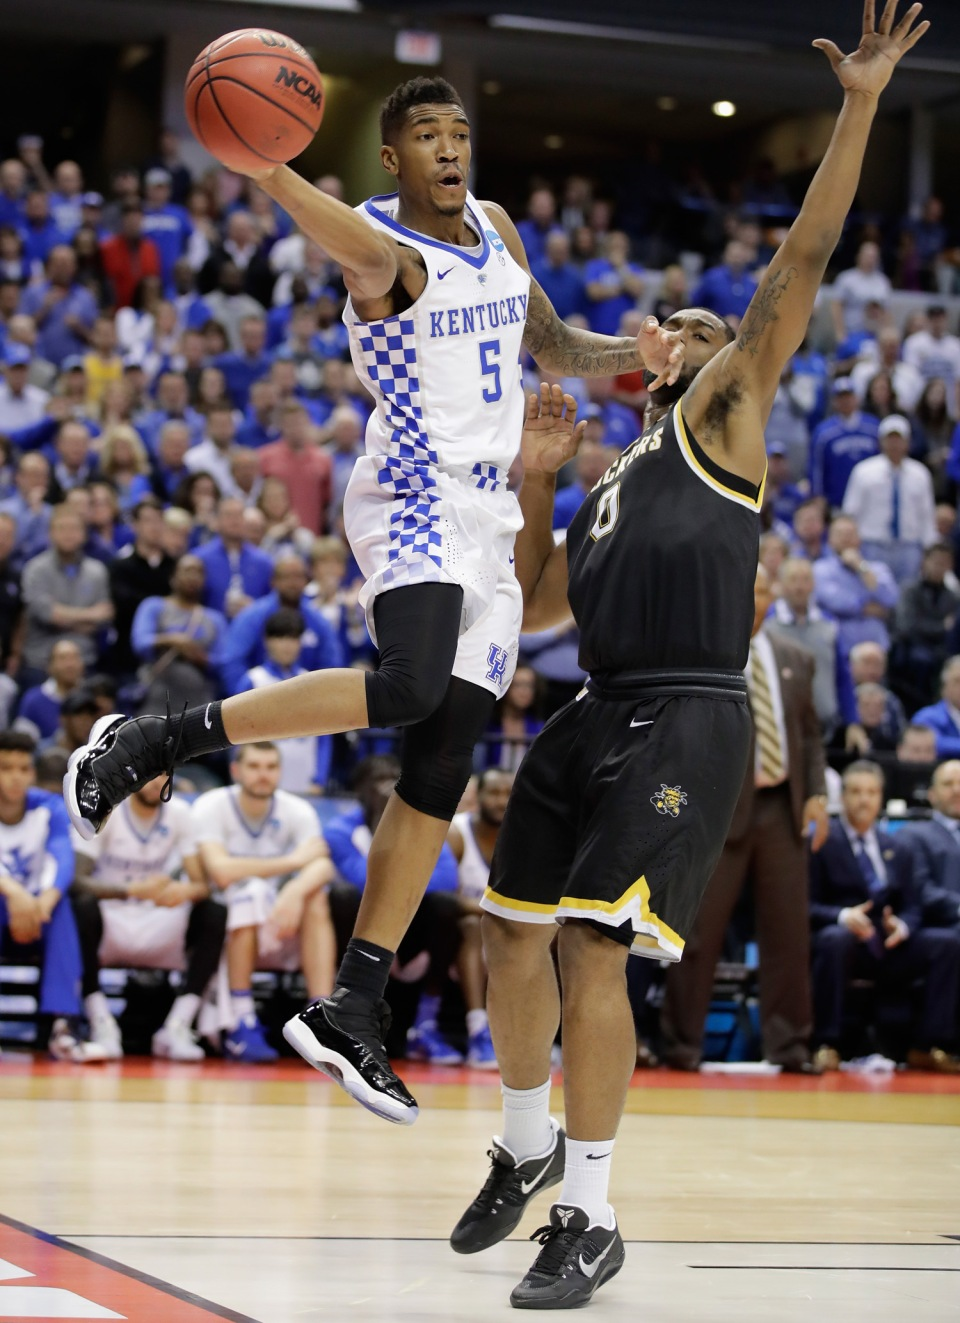 NCAA Basketball Tournament - Second Round - Wichita State v Kentucky